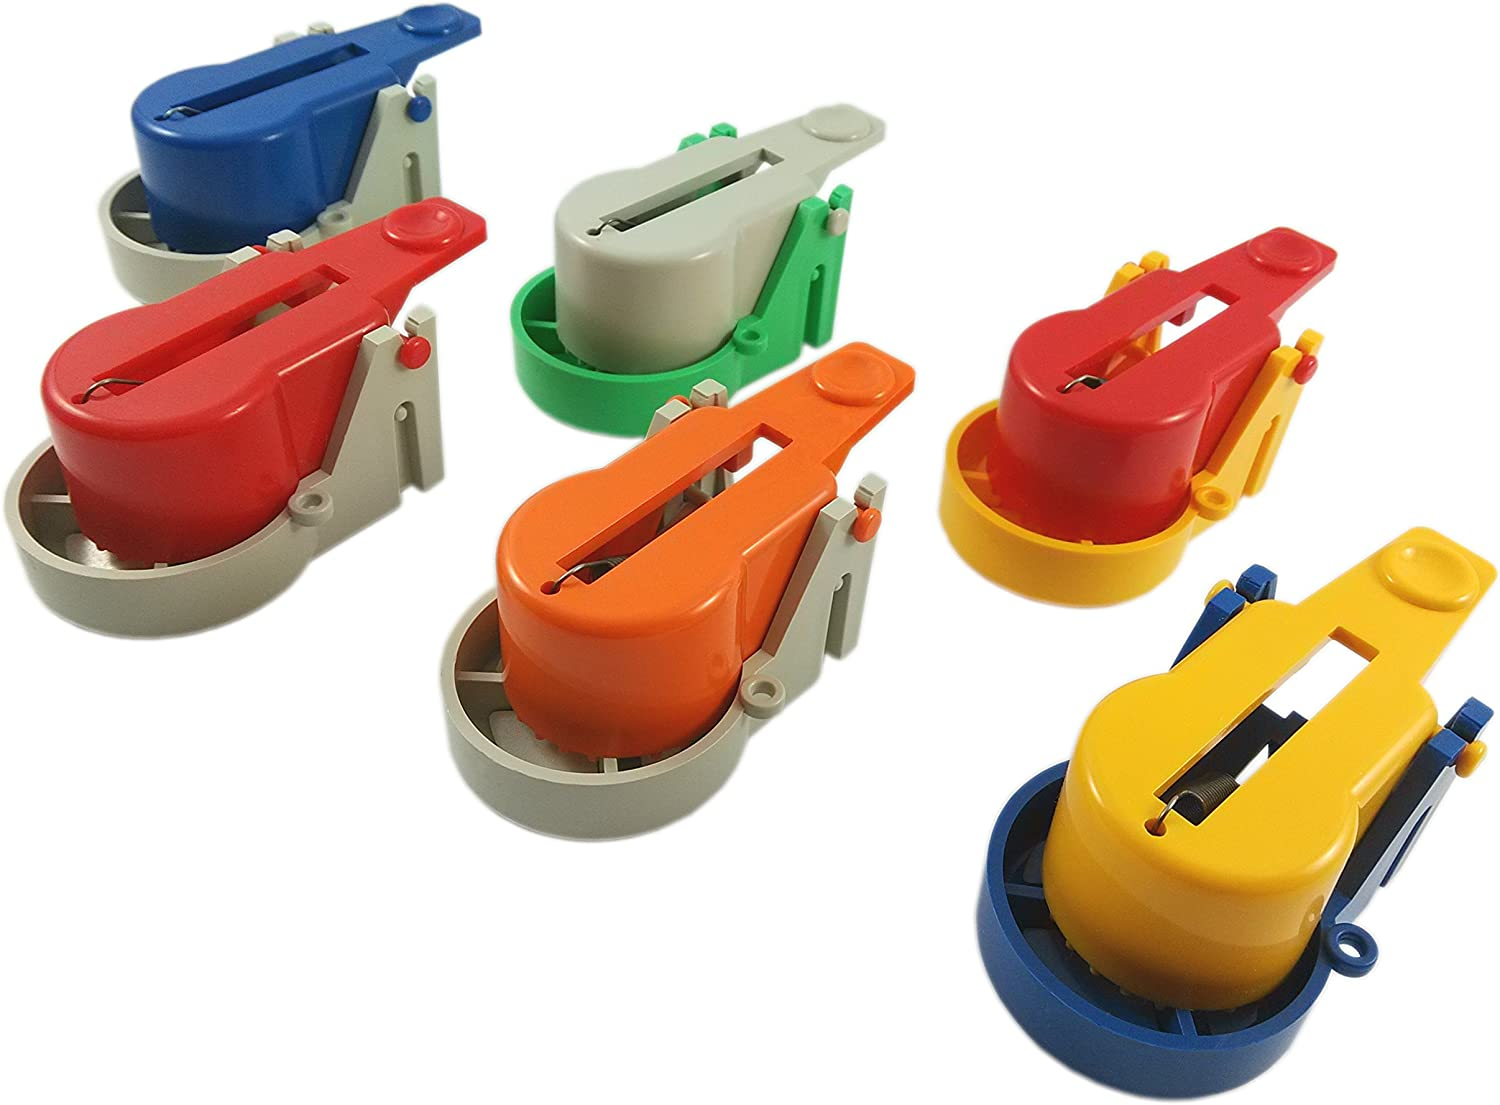 Amazon Com Made2catch Pack Of 6 Easy Use Mouse Traps Model 2016 Random Colors Easy Set Snap Mouse Trap Reusable Humane Mouse Traps That Work Mice Voles And